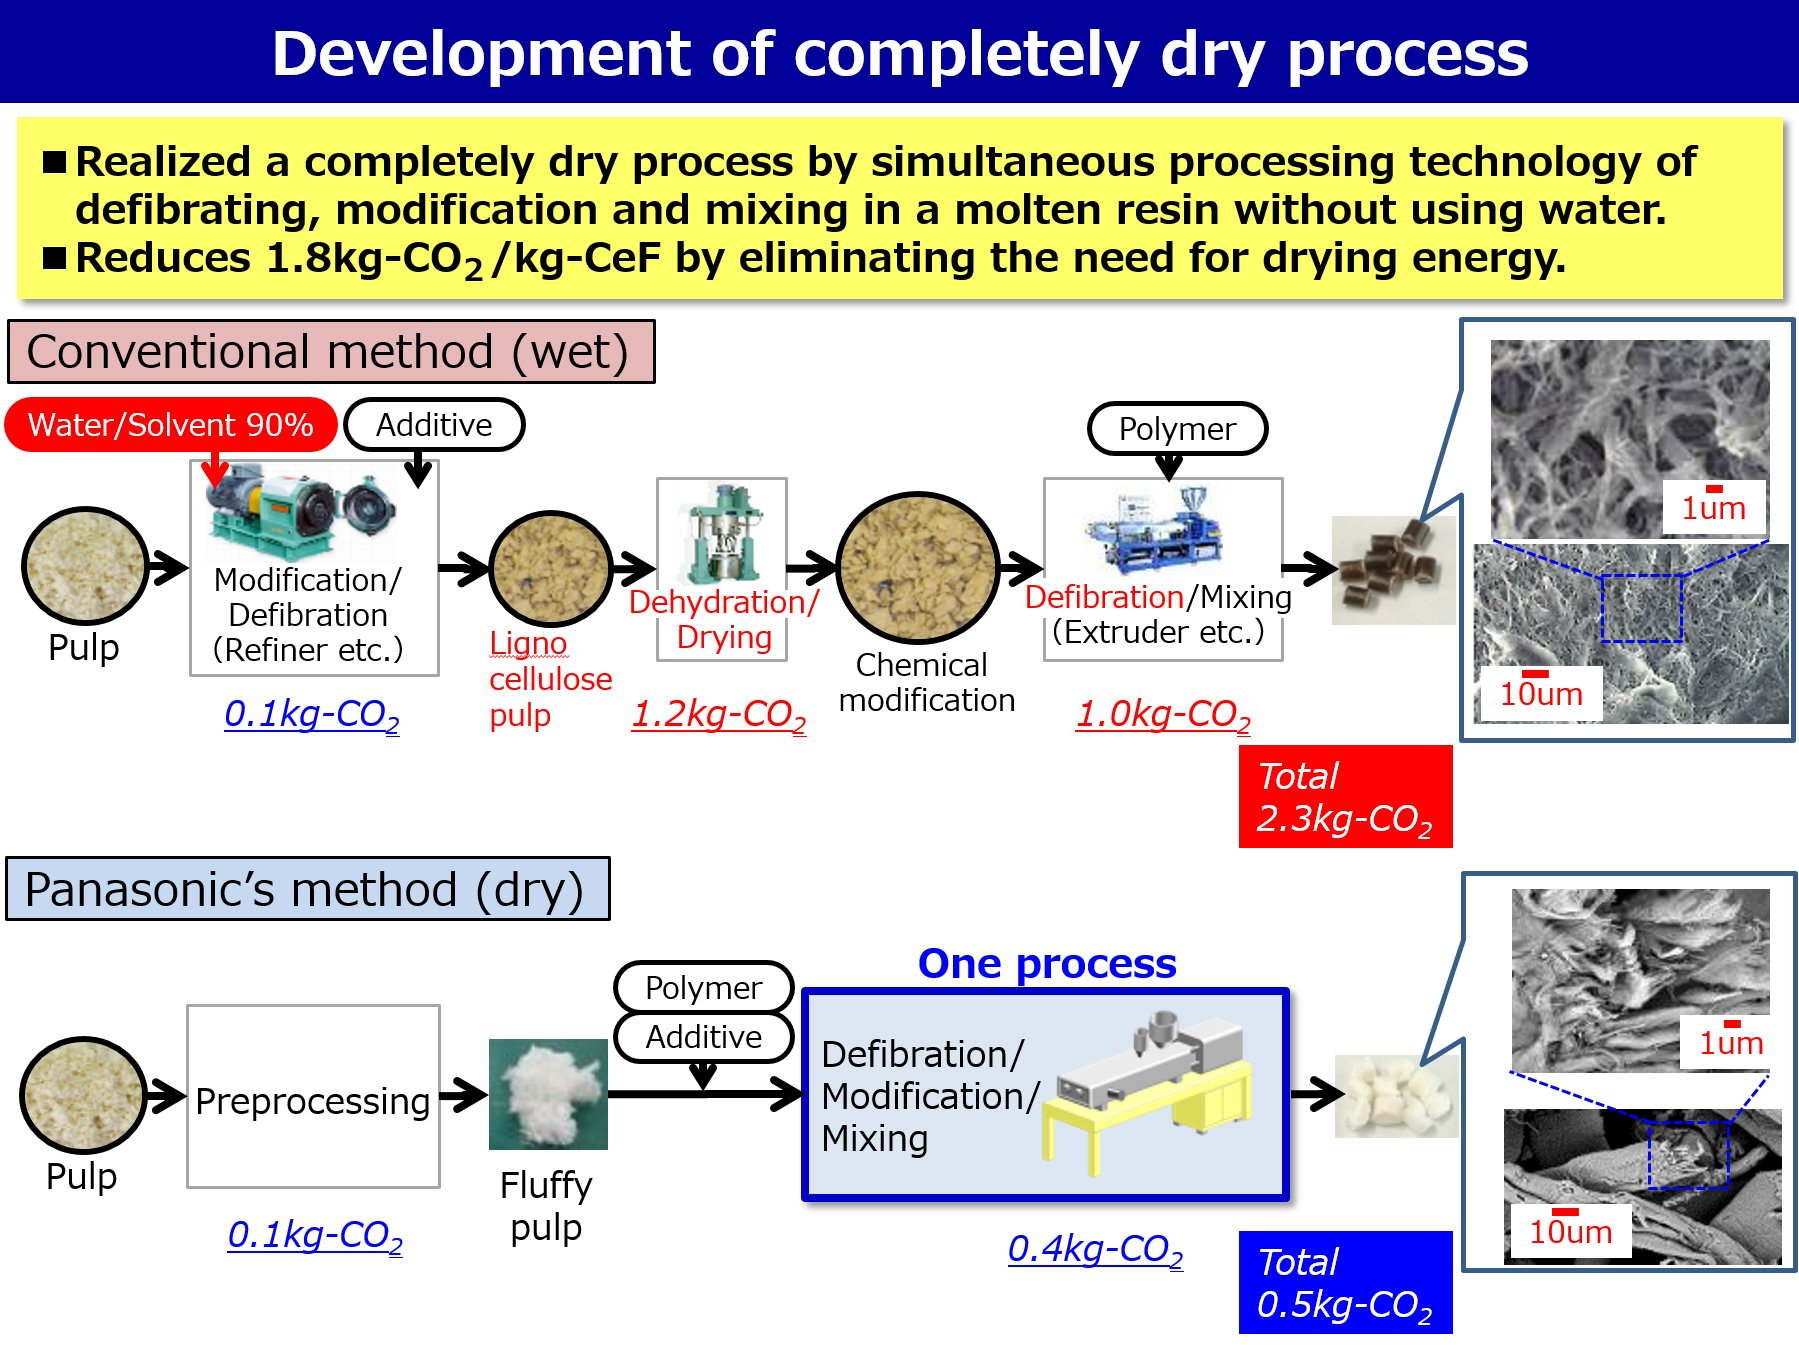 Illustration: Development of completely dry process